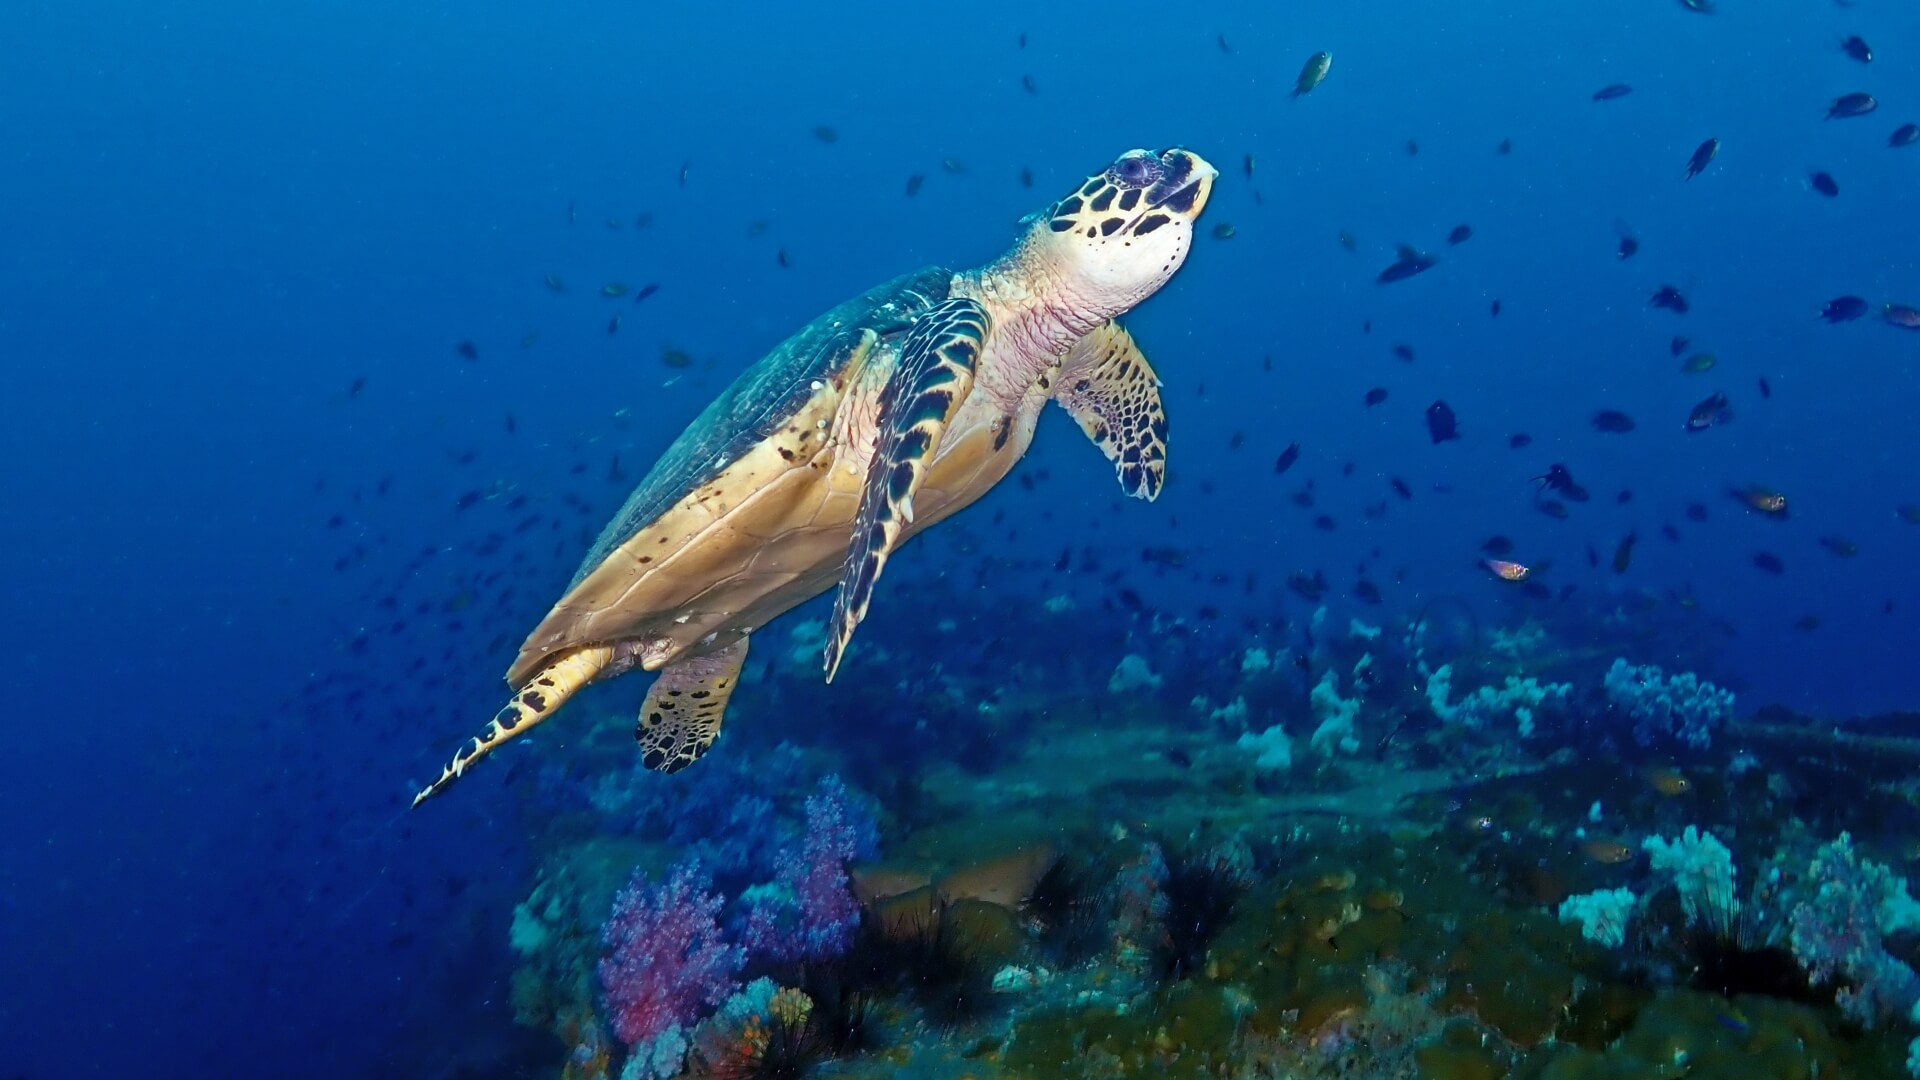 hawksbill turtle ascending from the king cruiser wreck